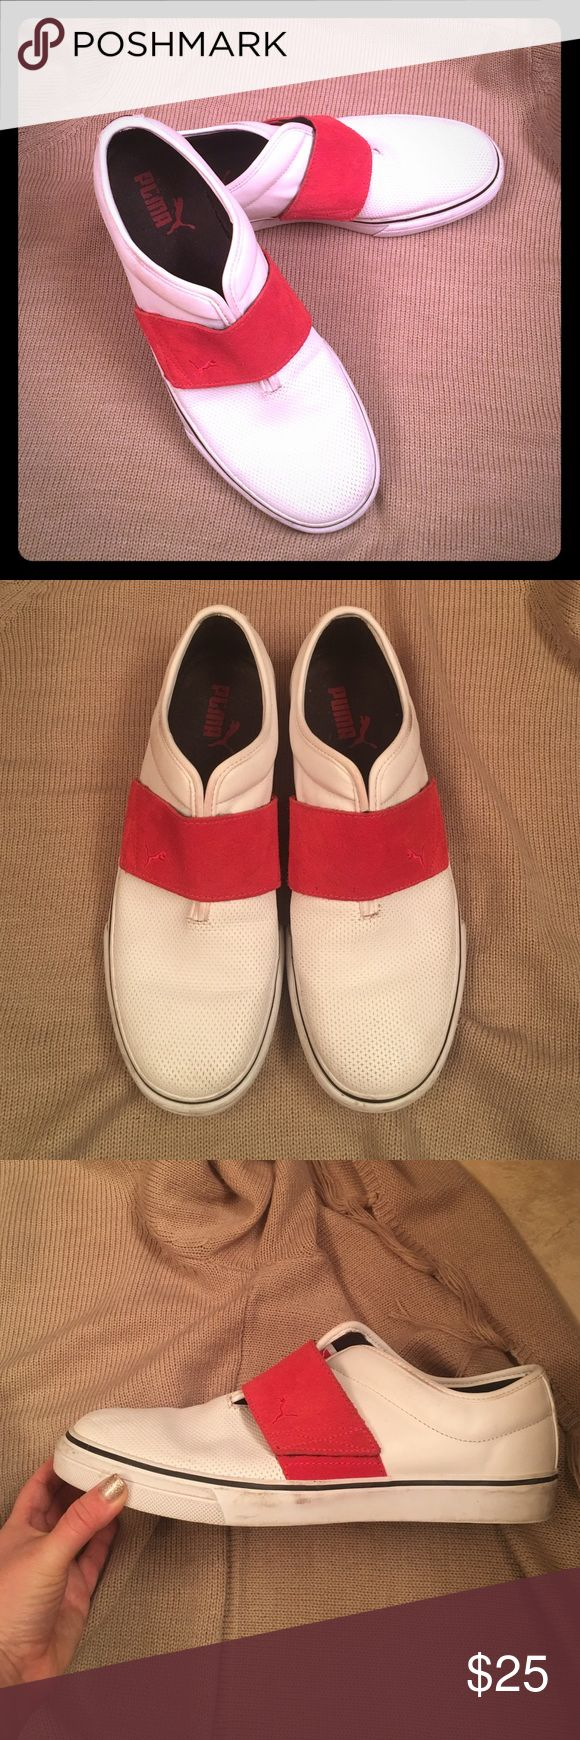 Puma Sport Lifestyle Tennis Shoes Men's Puma Slip On. Good pre-loved condition.  Very well kept. White is still very white! Minor wear & tear (shown in photos) that could be cleaned off. Puma Shoes Loafers & Slip-Ons